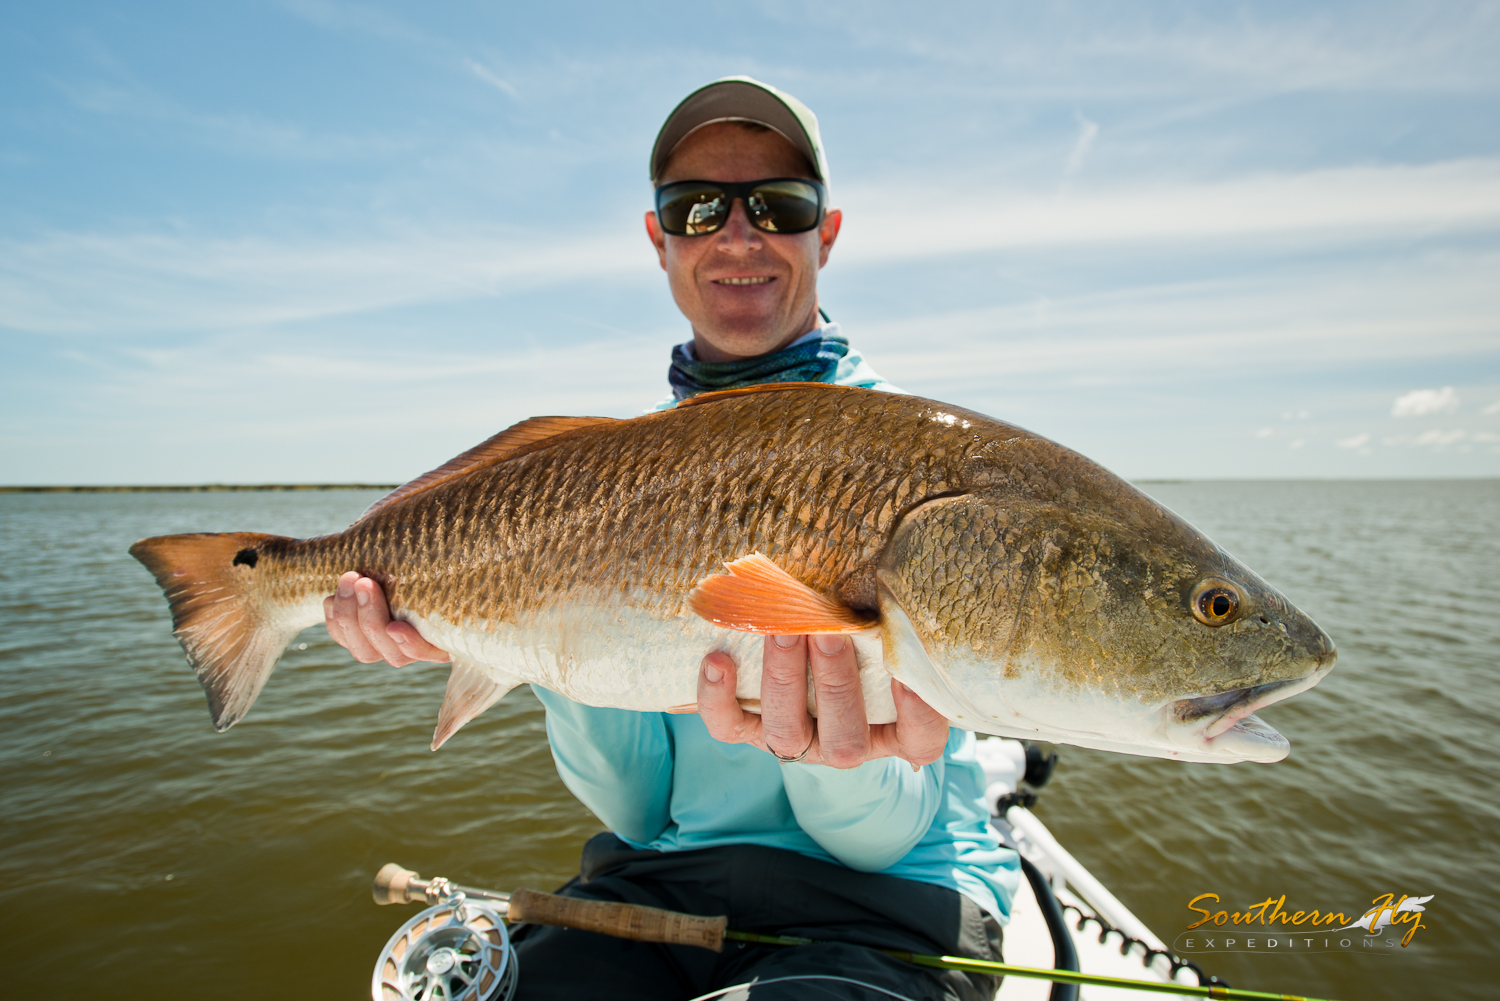 fly fishing for redfish in new orleans louisiana with Southern Fly Expeditions